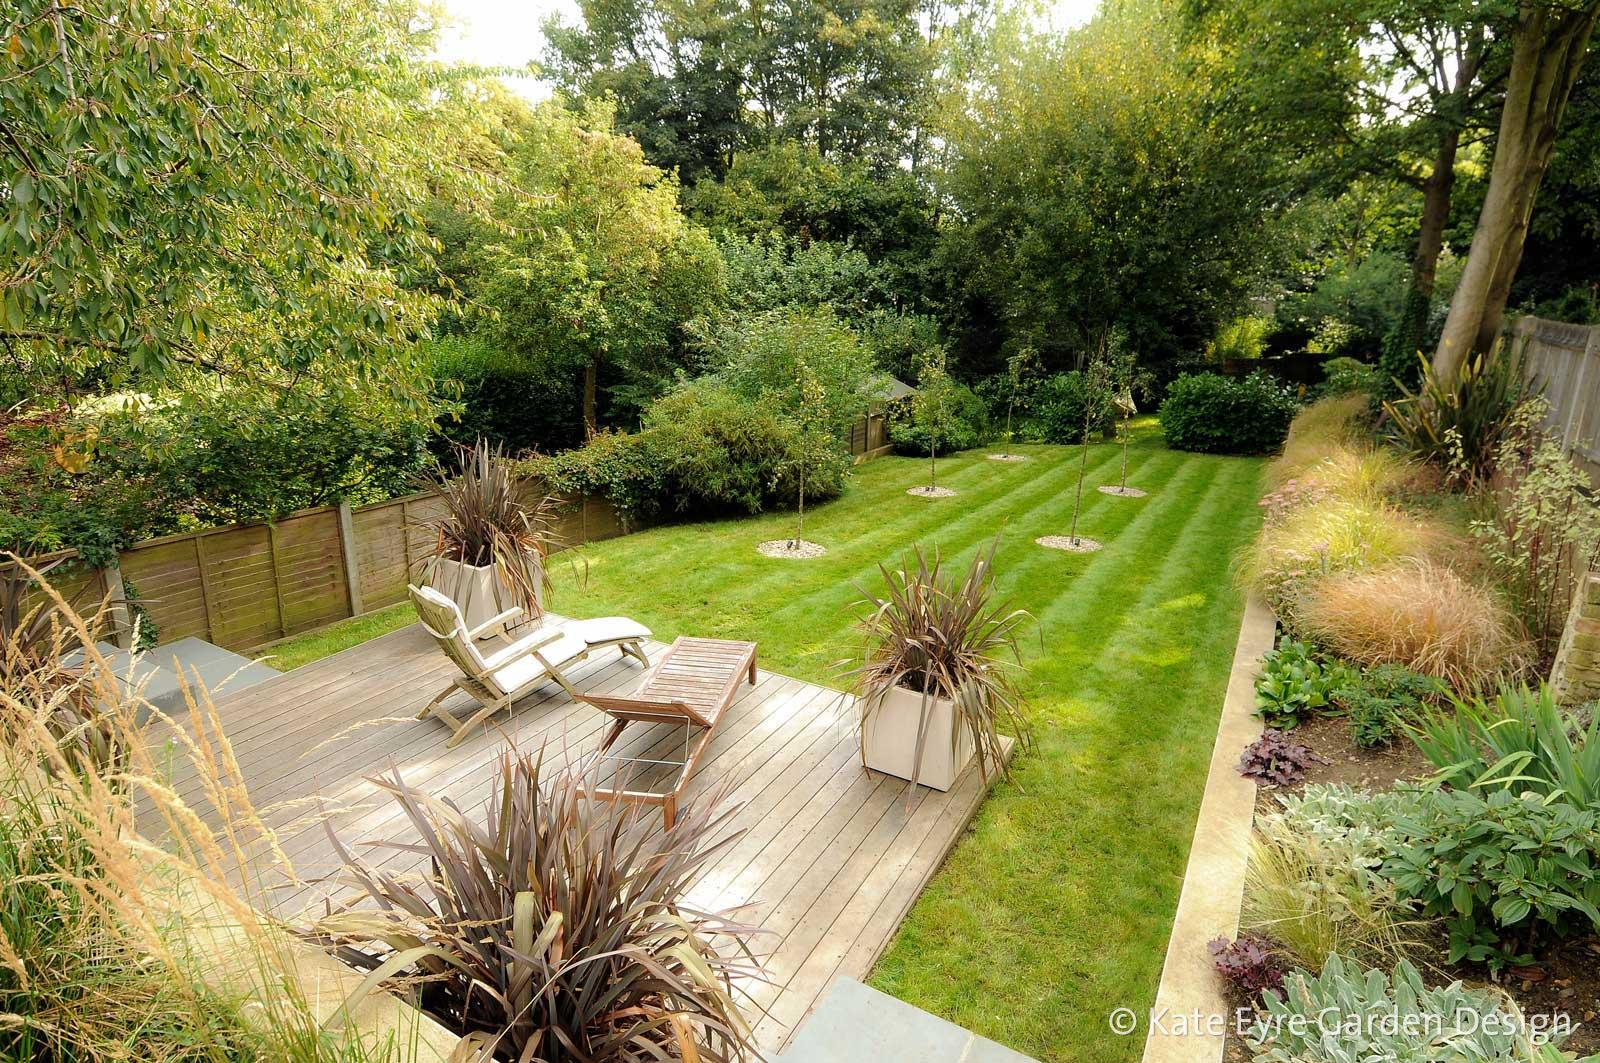 Garden design in crystal palace south east london for Garden and design